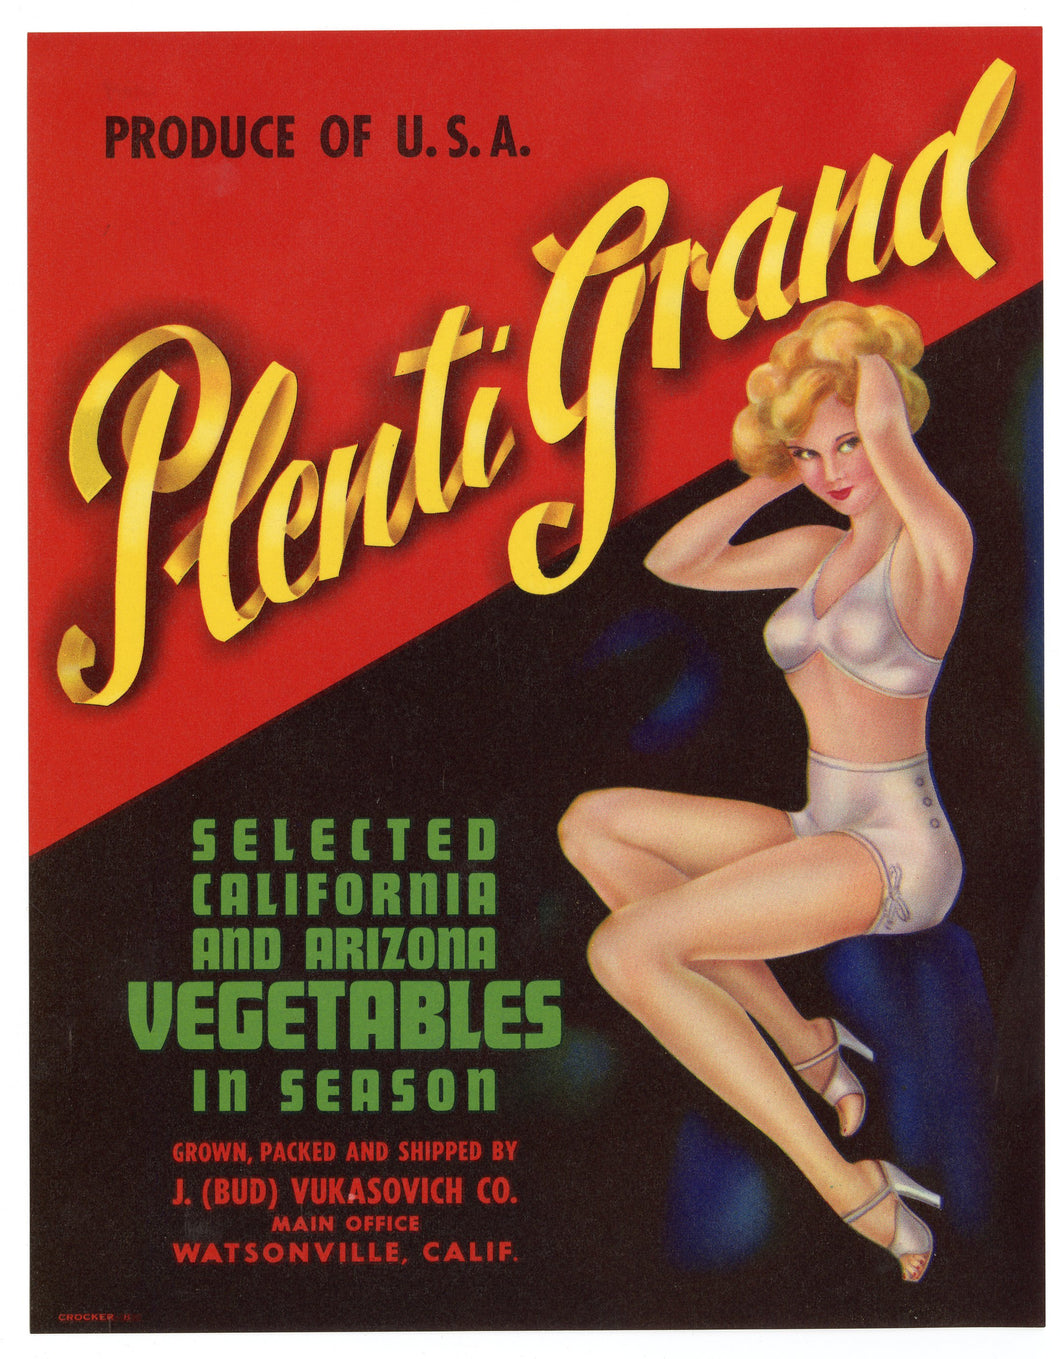 PLENTI GRAND Selected California & Arizona VEGETABLE Crate Label, Watsonville, California, Lovely Lady